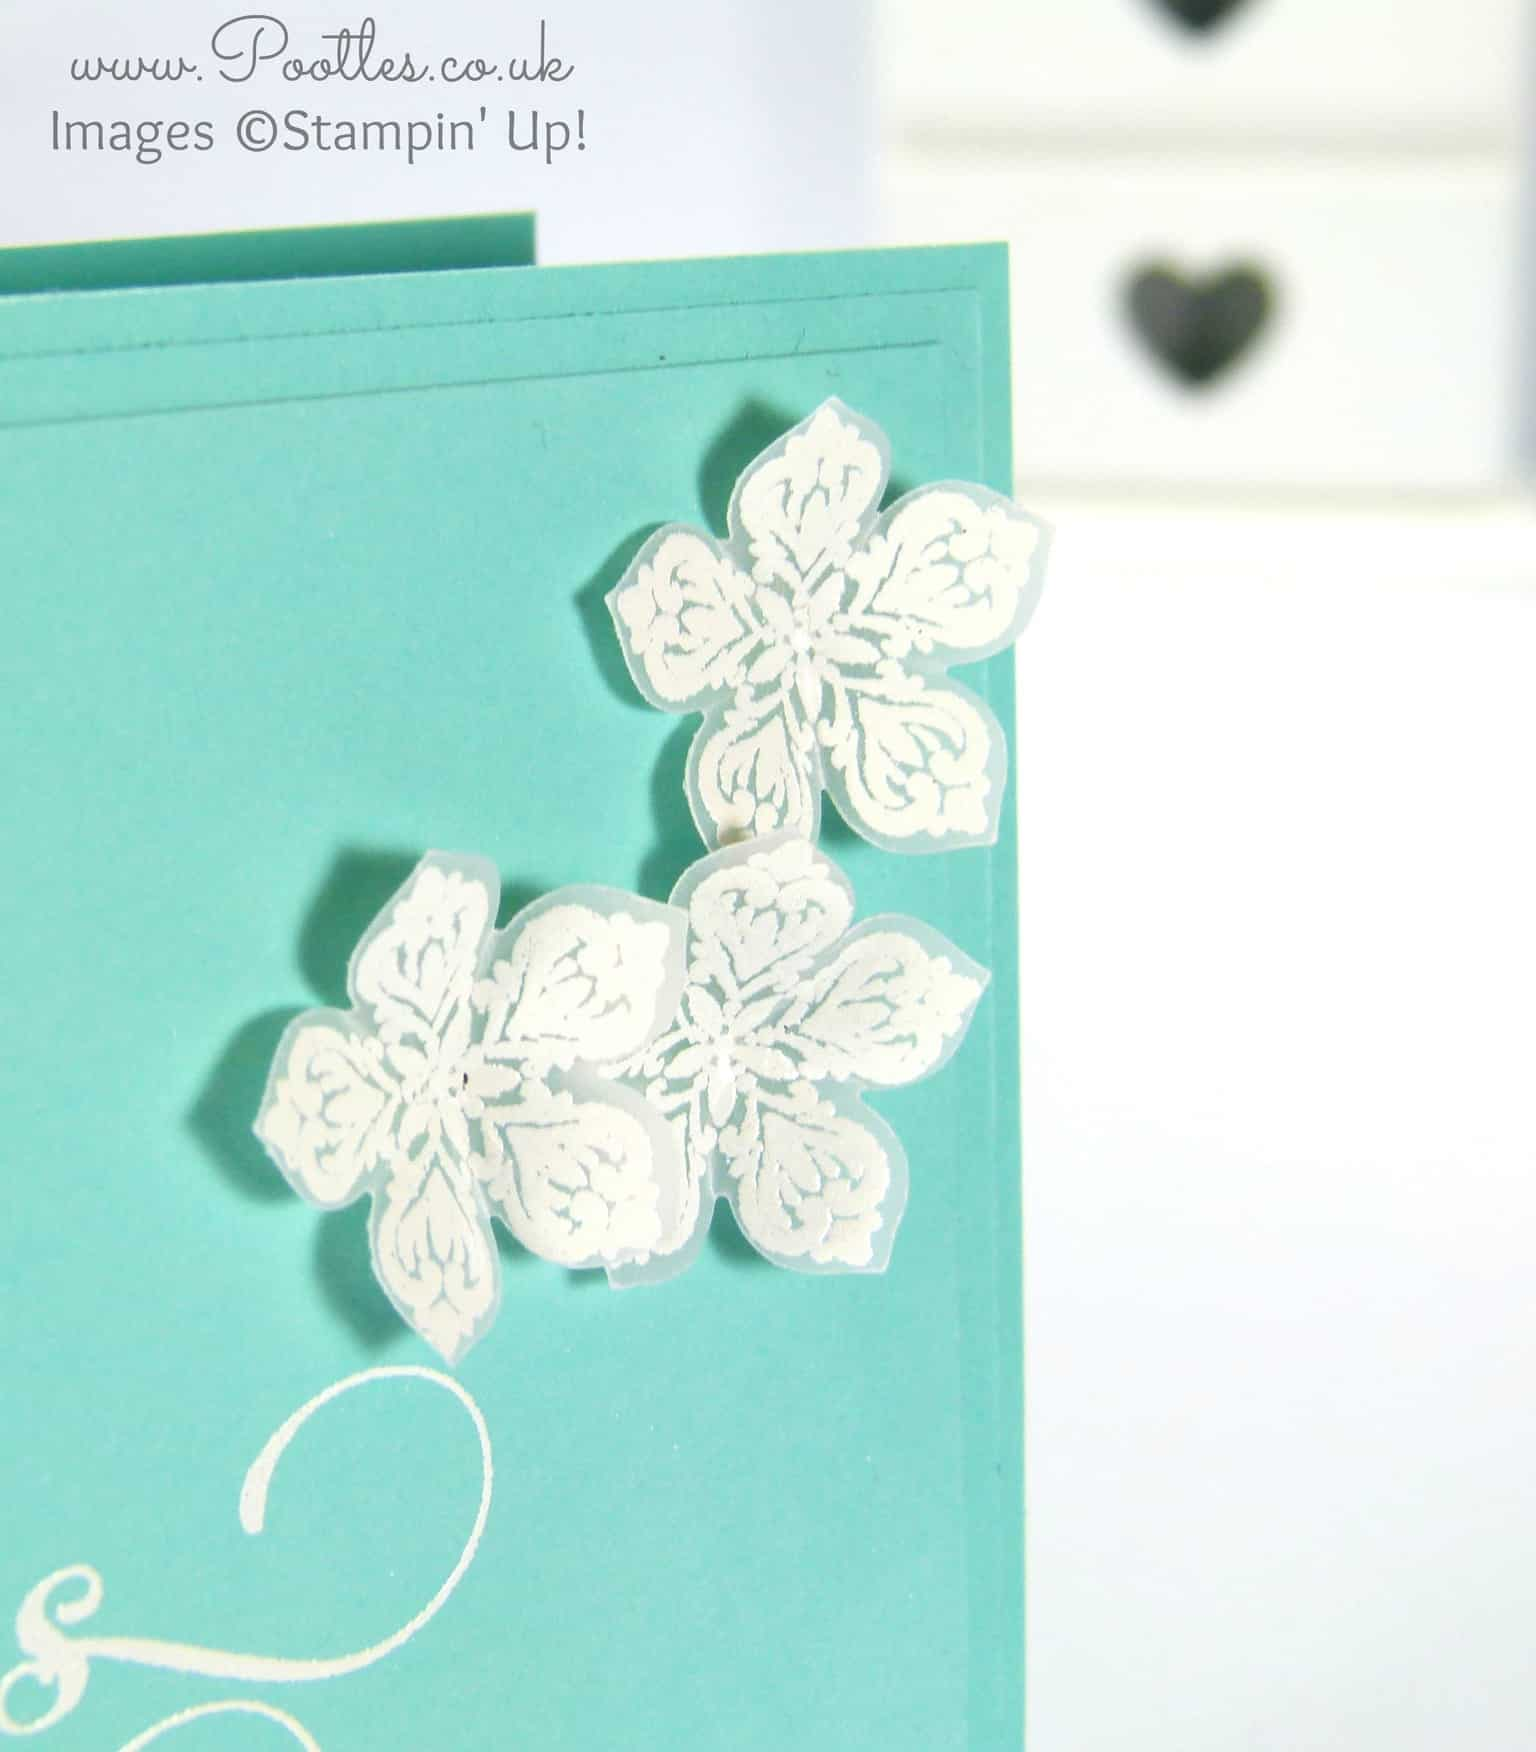 White Heat Embossing on Vellum